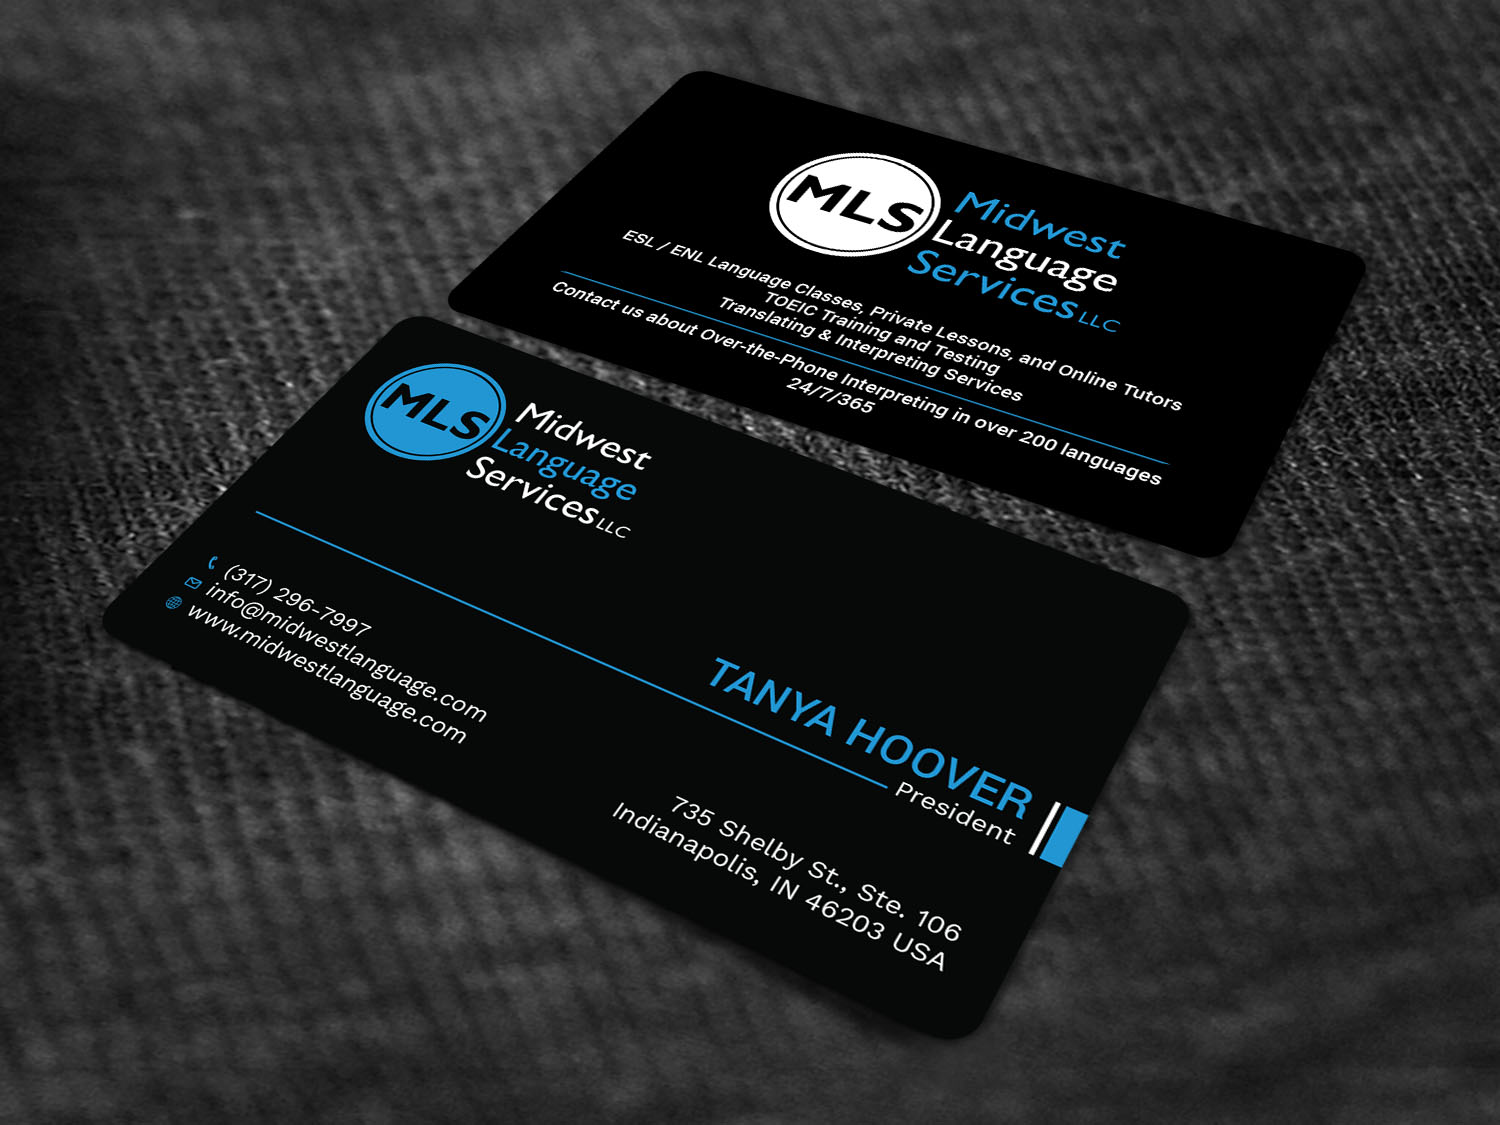 Serious modern business business card design for midwest language business card design by avanger000 for midwest language services llc design 17735507 reheart Choice Image